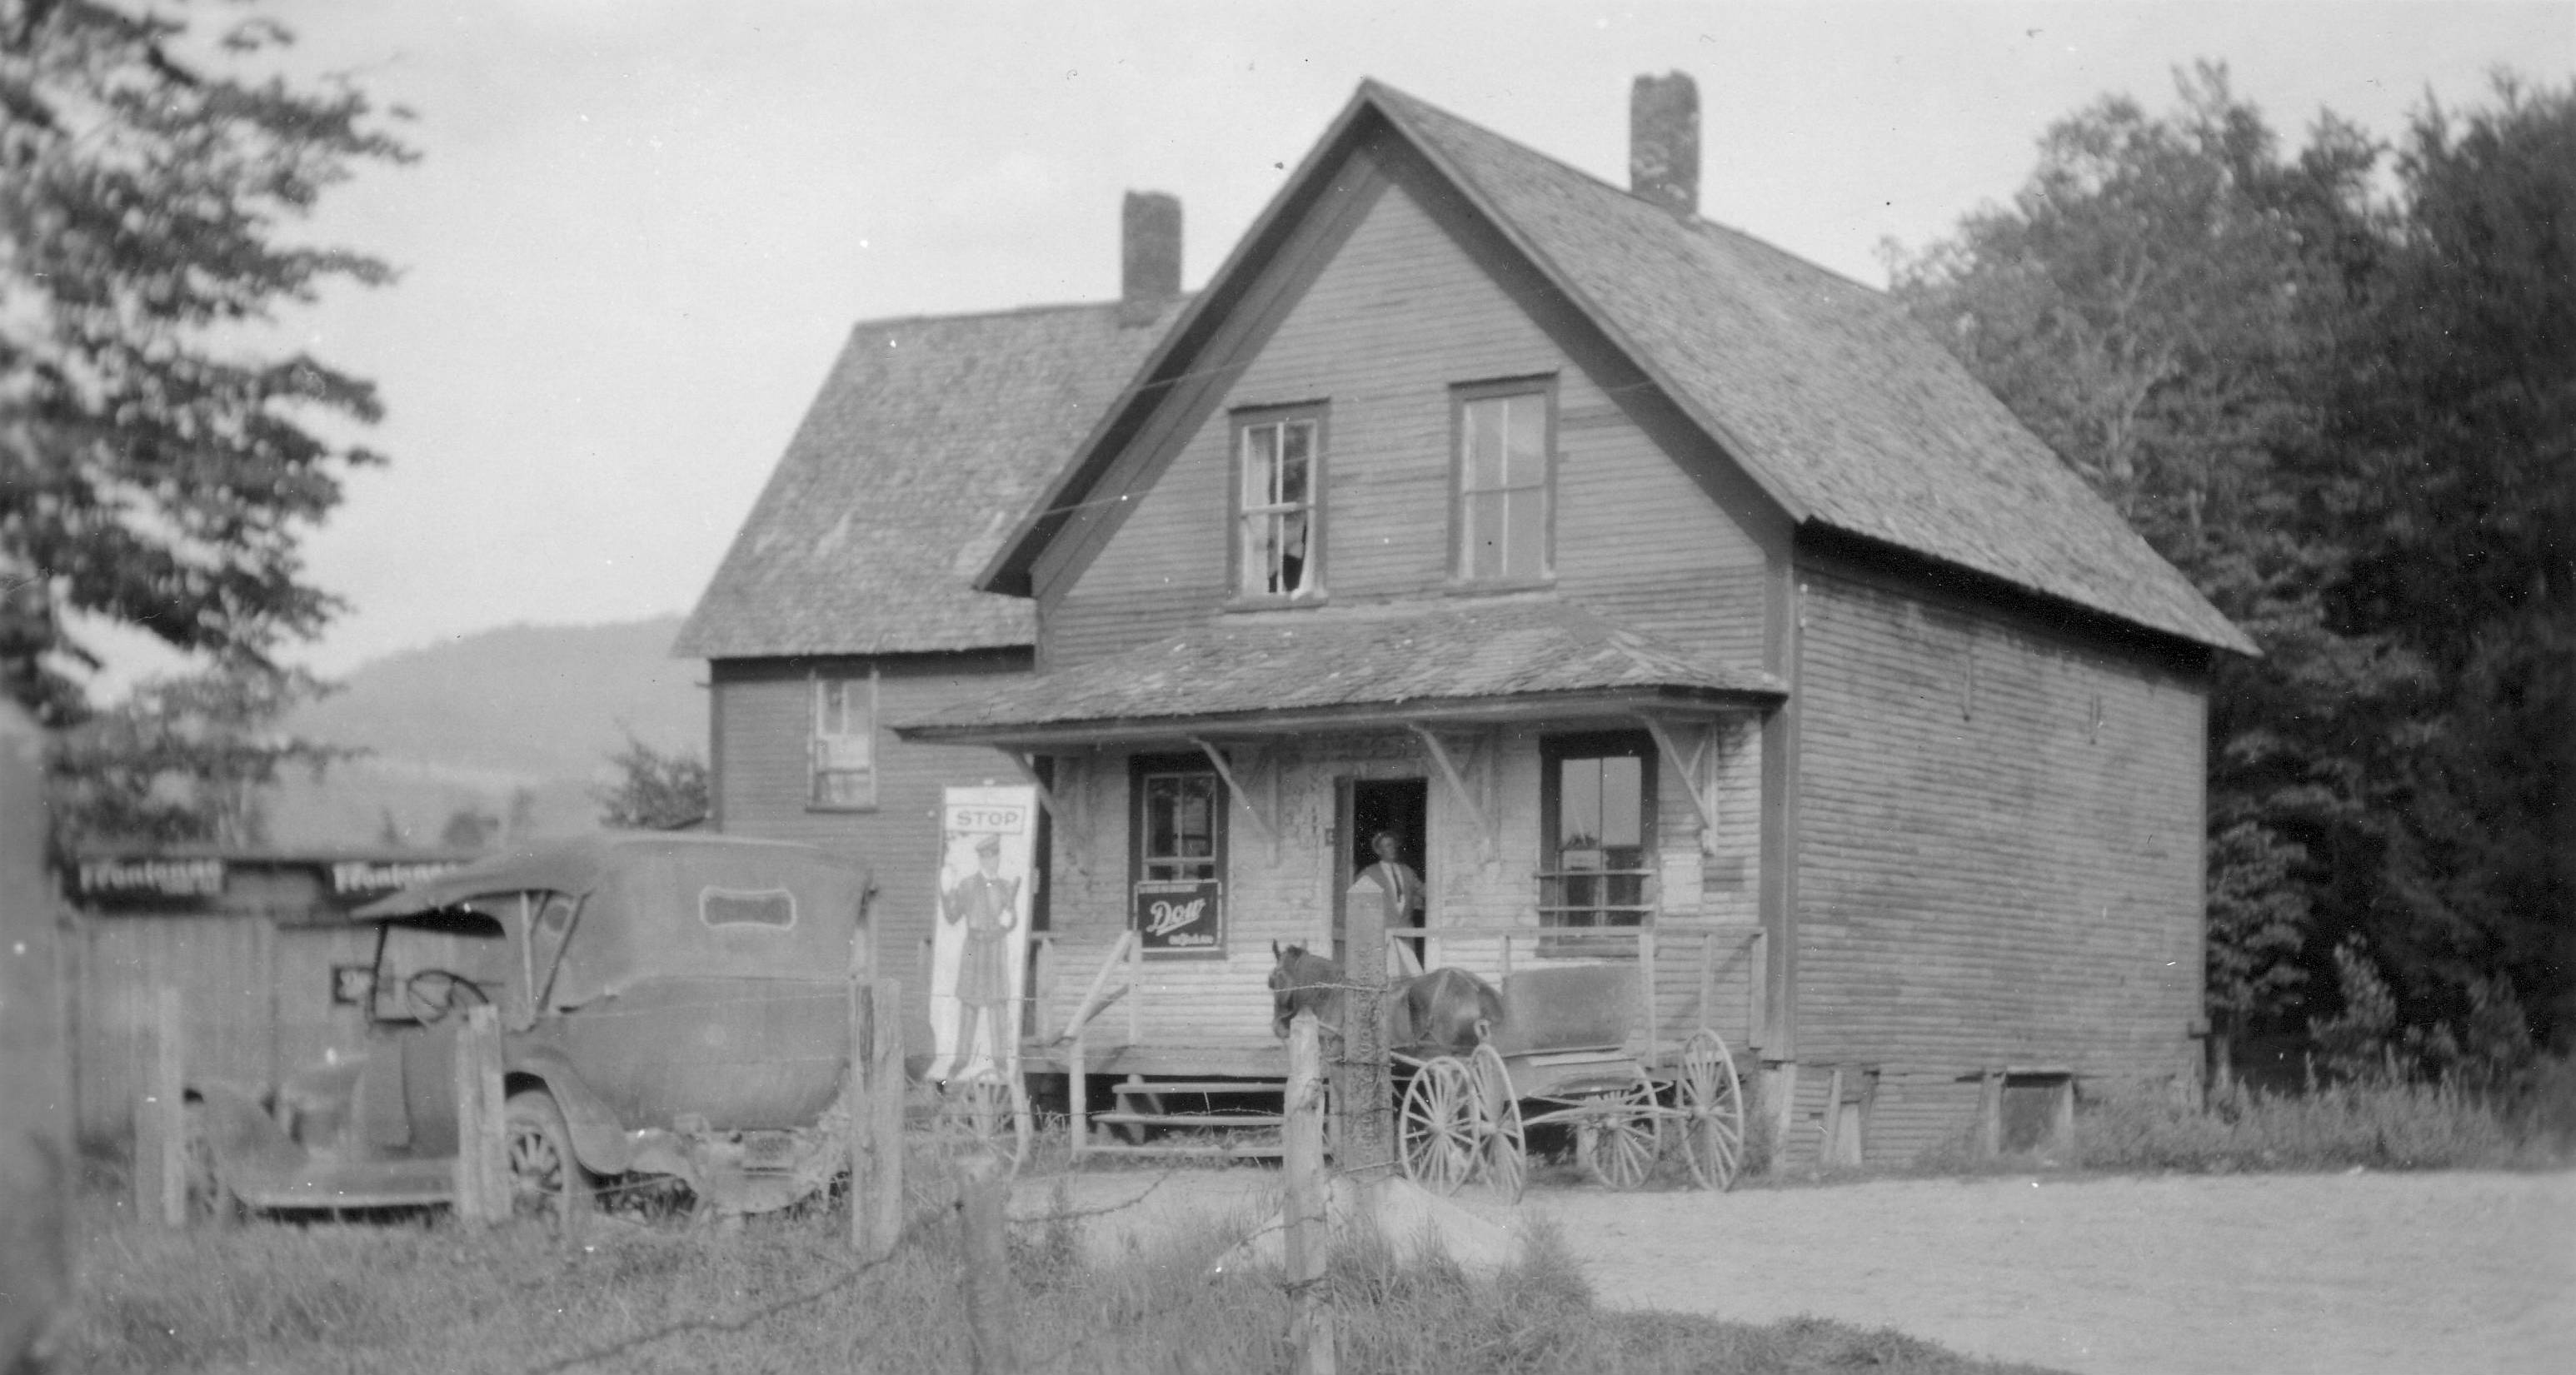 photo of Labont's Line house with a car and horse drawn buggy in front